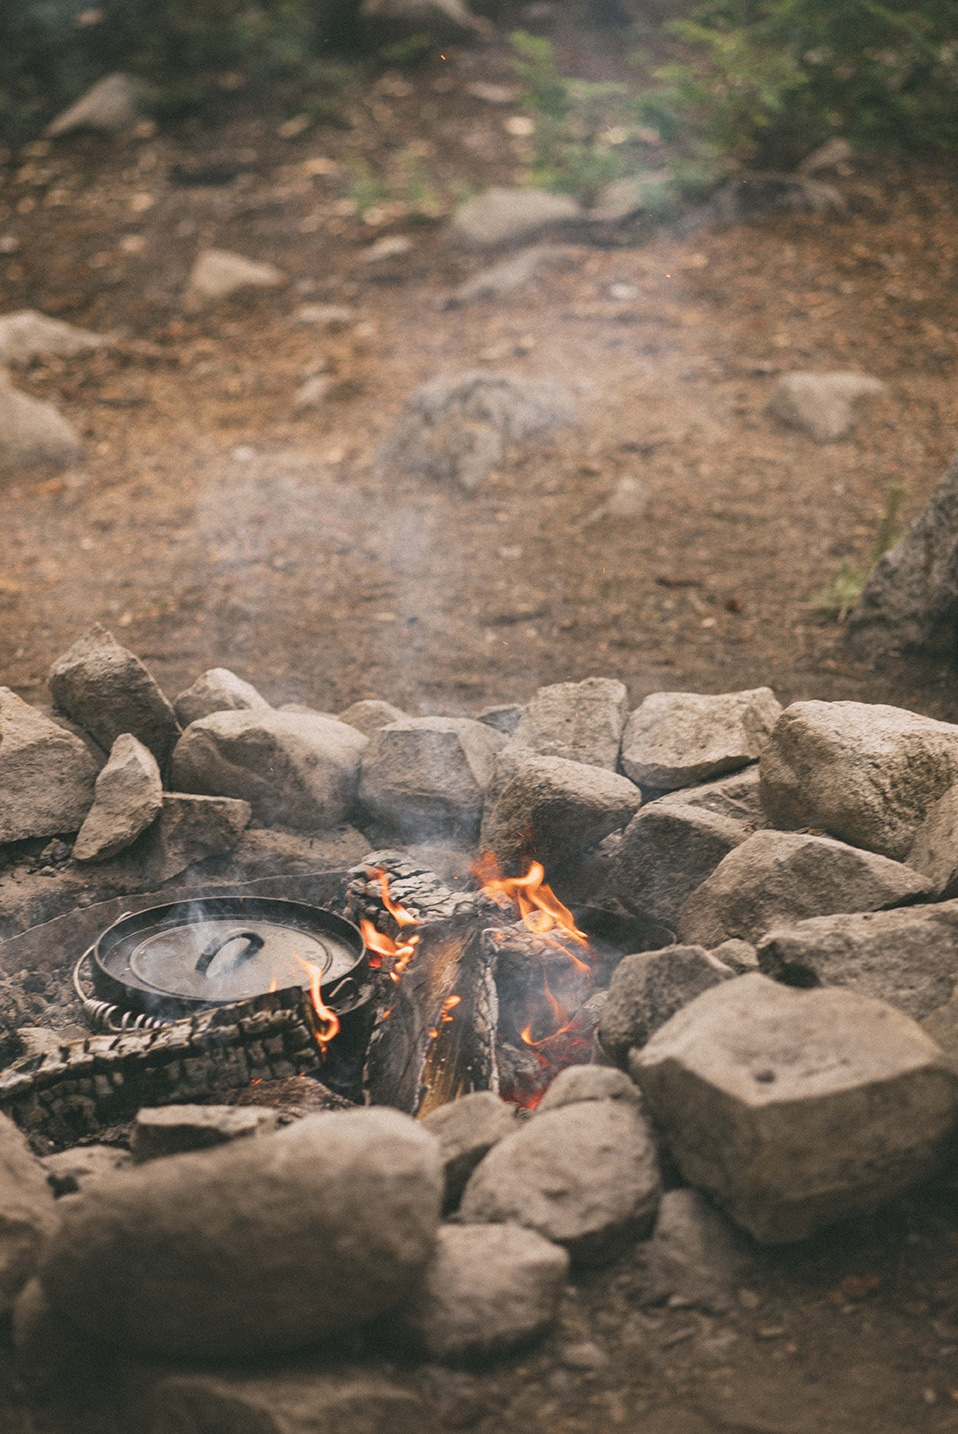 Dutch Oven on Camp Fire